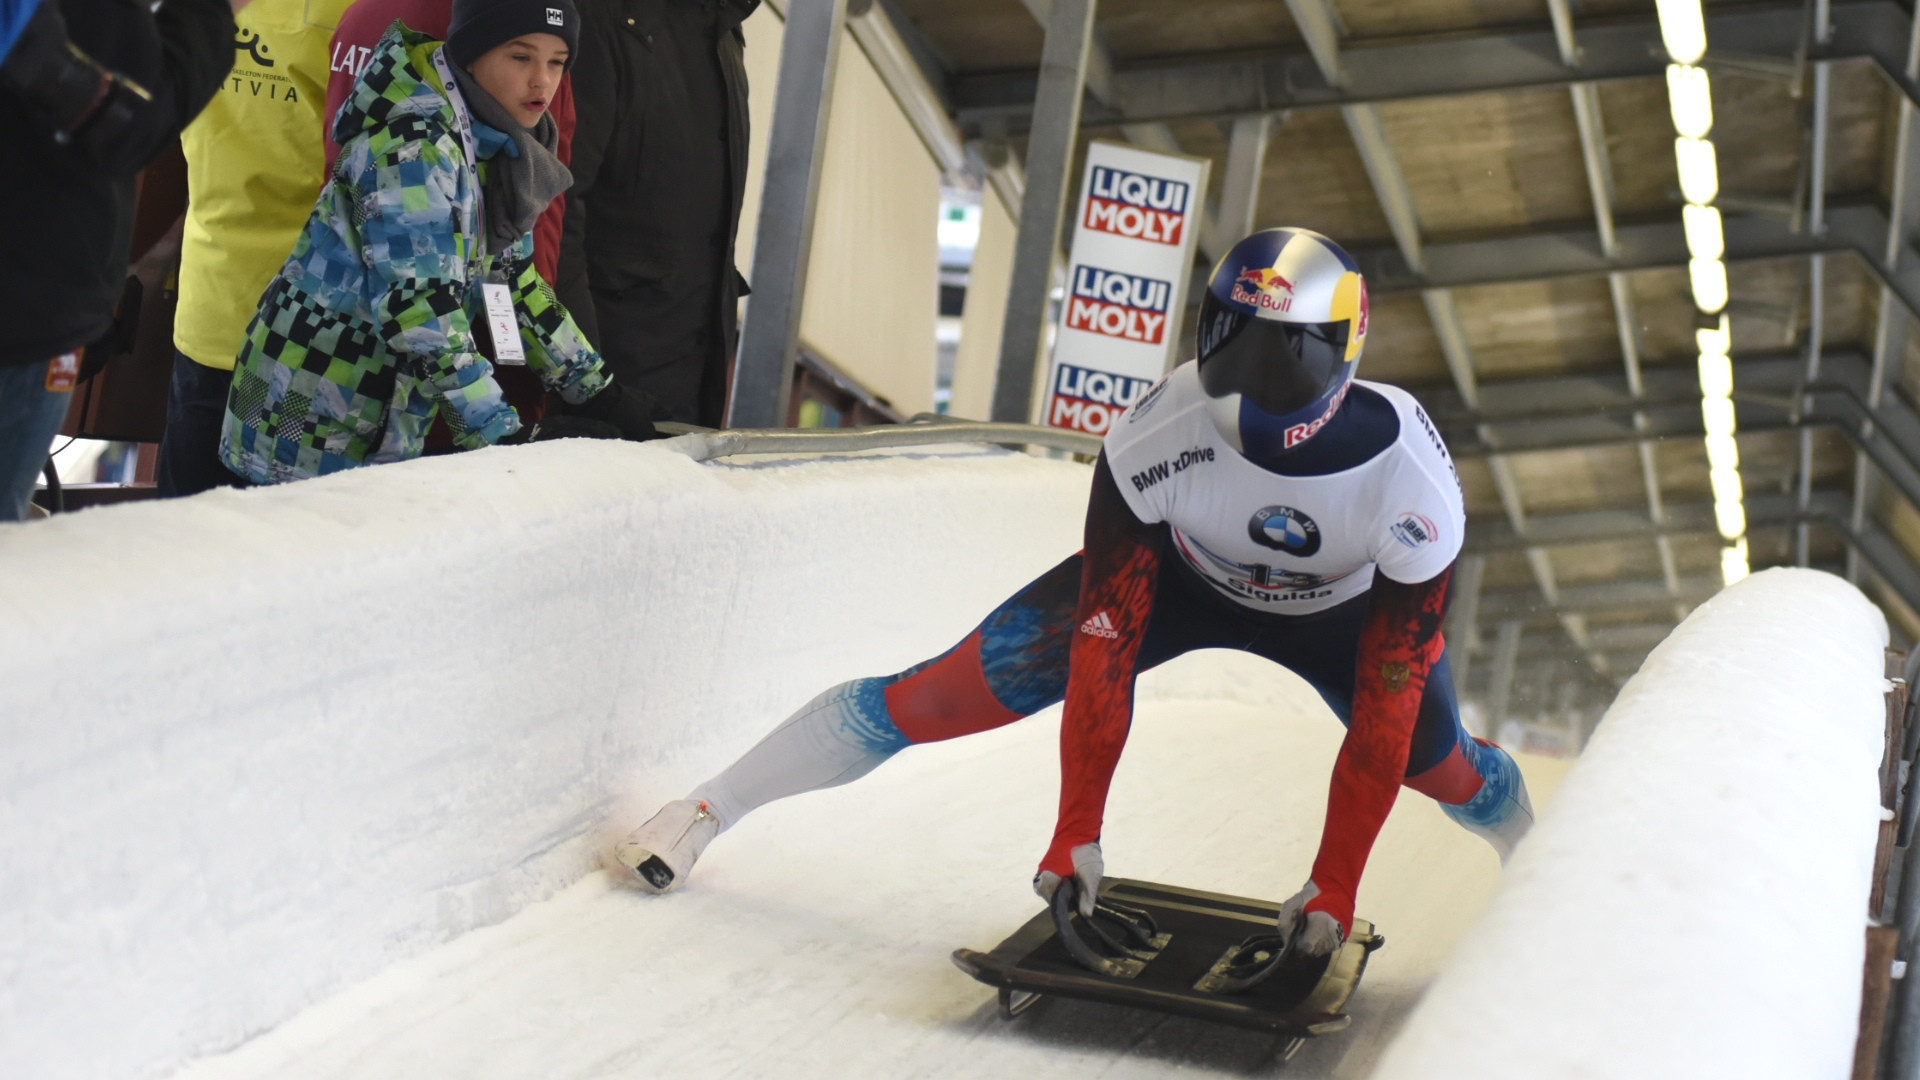 Russian skeleton racer Tregubov secures first IBSF World Cup win in Sigulda